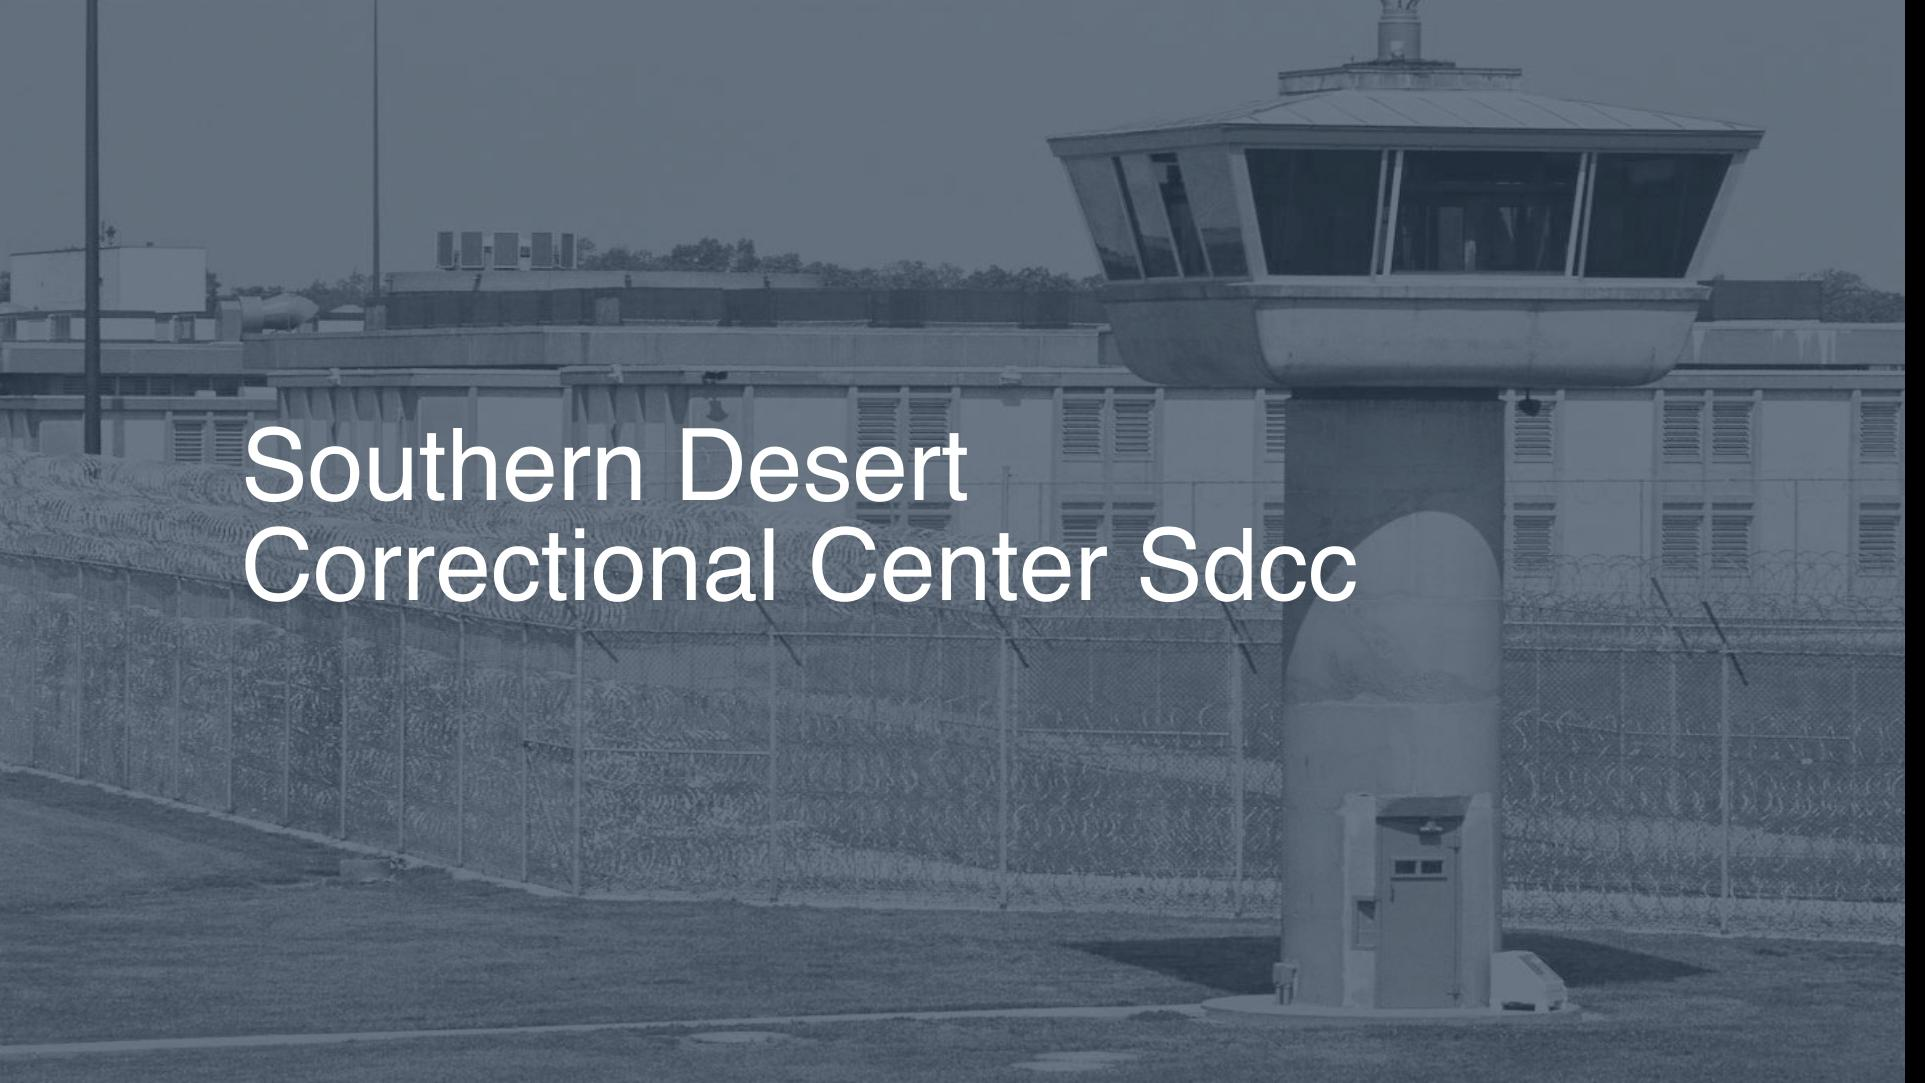 Southern Desert Correctional Center (SDCC) | Pigeonly